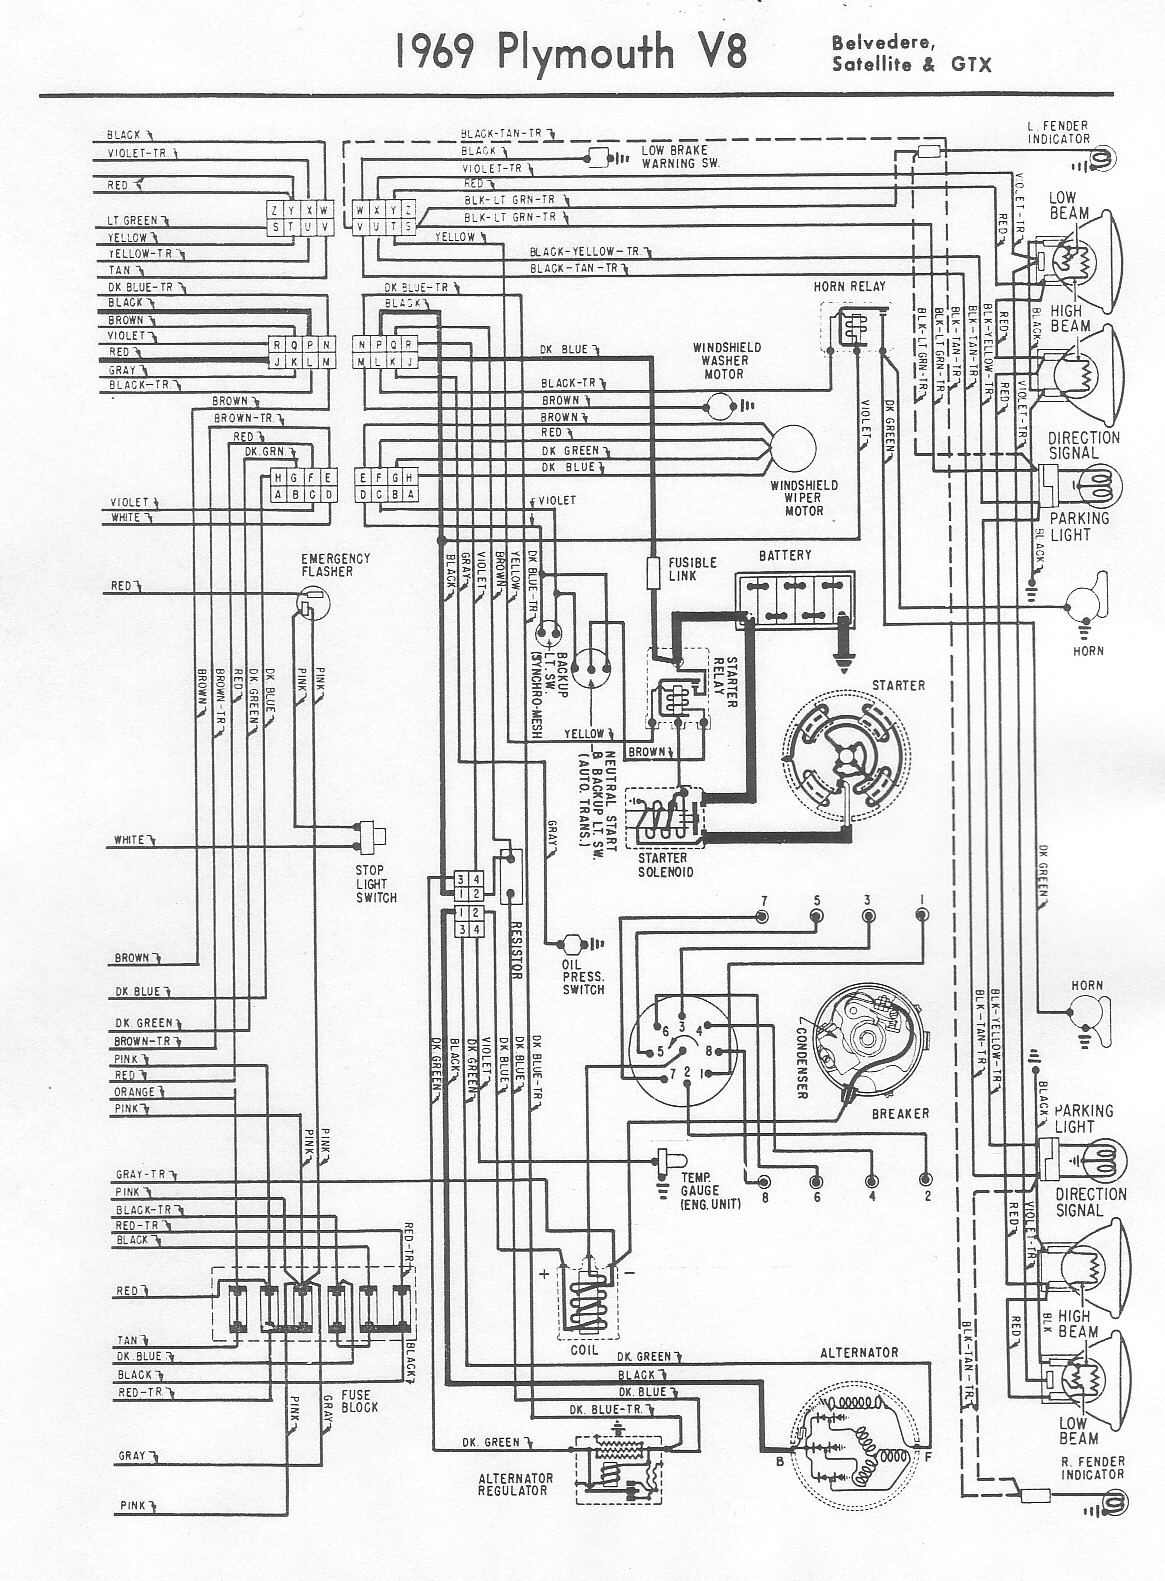 69 coronet wiring diagram 69 free engine image for user manual download 67  Dodge Coronet 66 Dodge Coronet